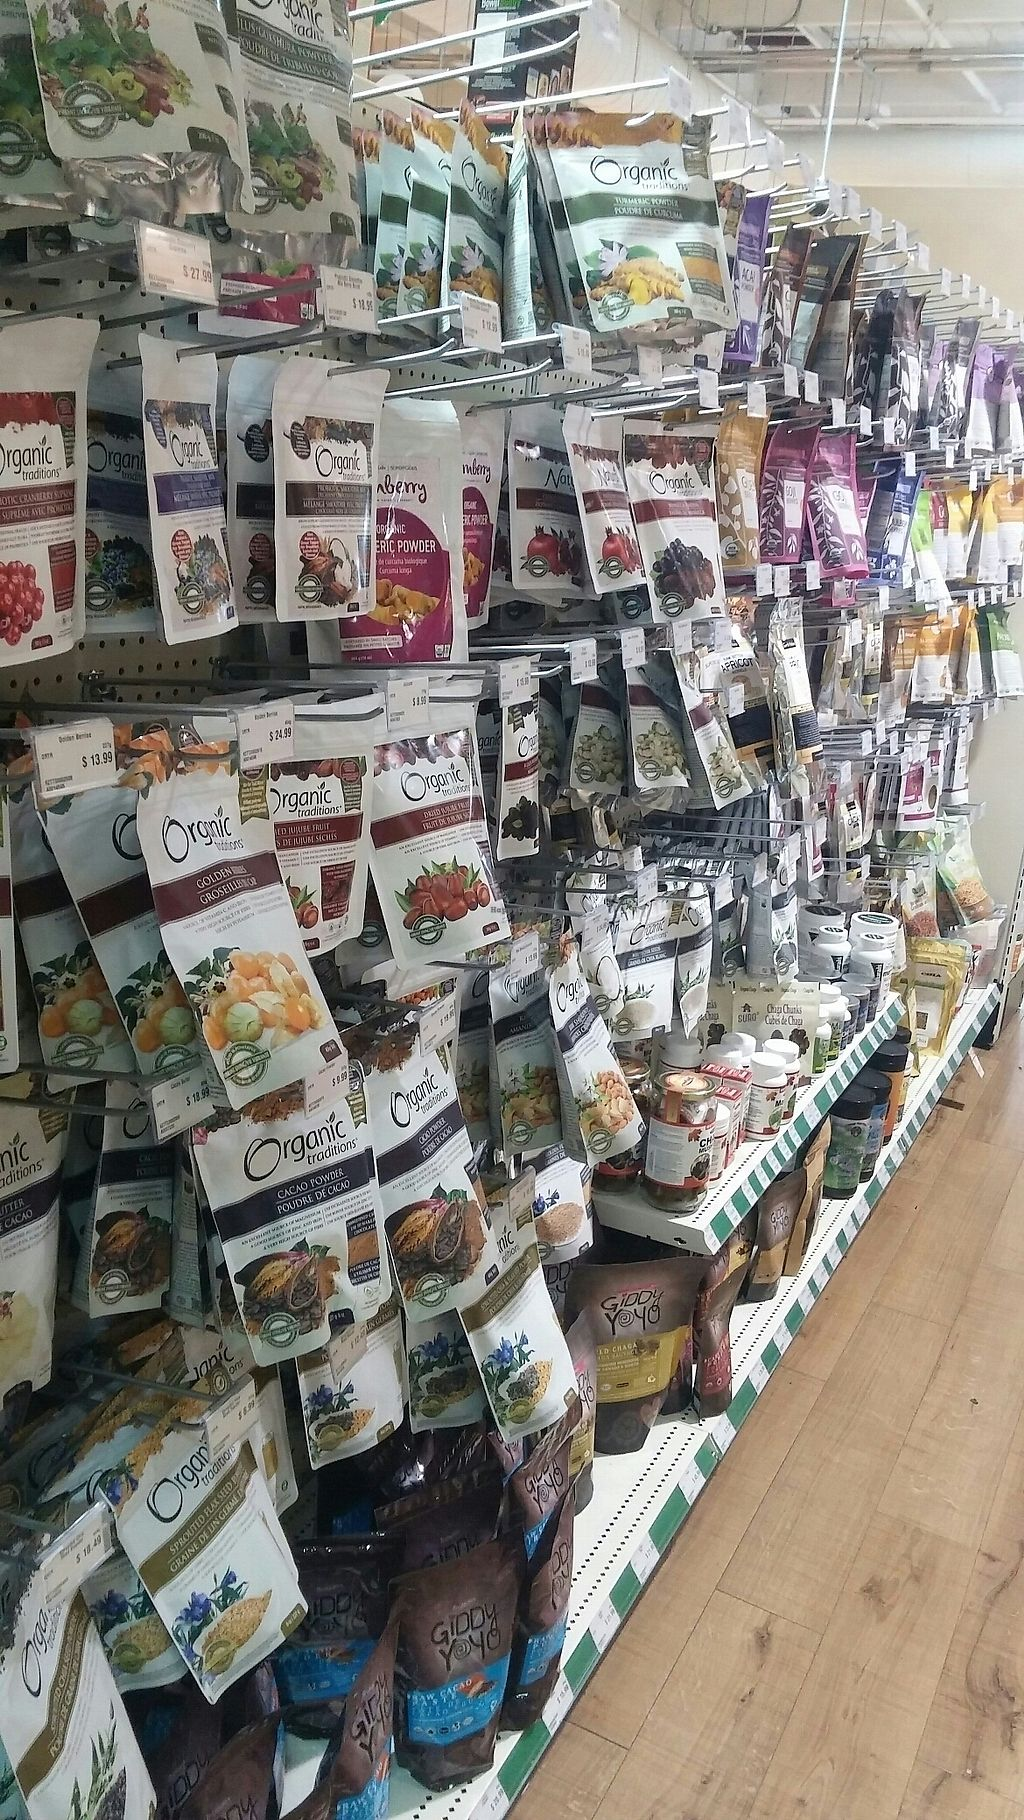 """Photo of Healthy Planet  by <a href=""""/members/profile/Lindz"""">Lindz</a> <br/>Fruit powders, cacao nibs, etc <br/> July 22, 2017  - <a href='/contact/abuse/image/95059/283275'>Report</a>"""